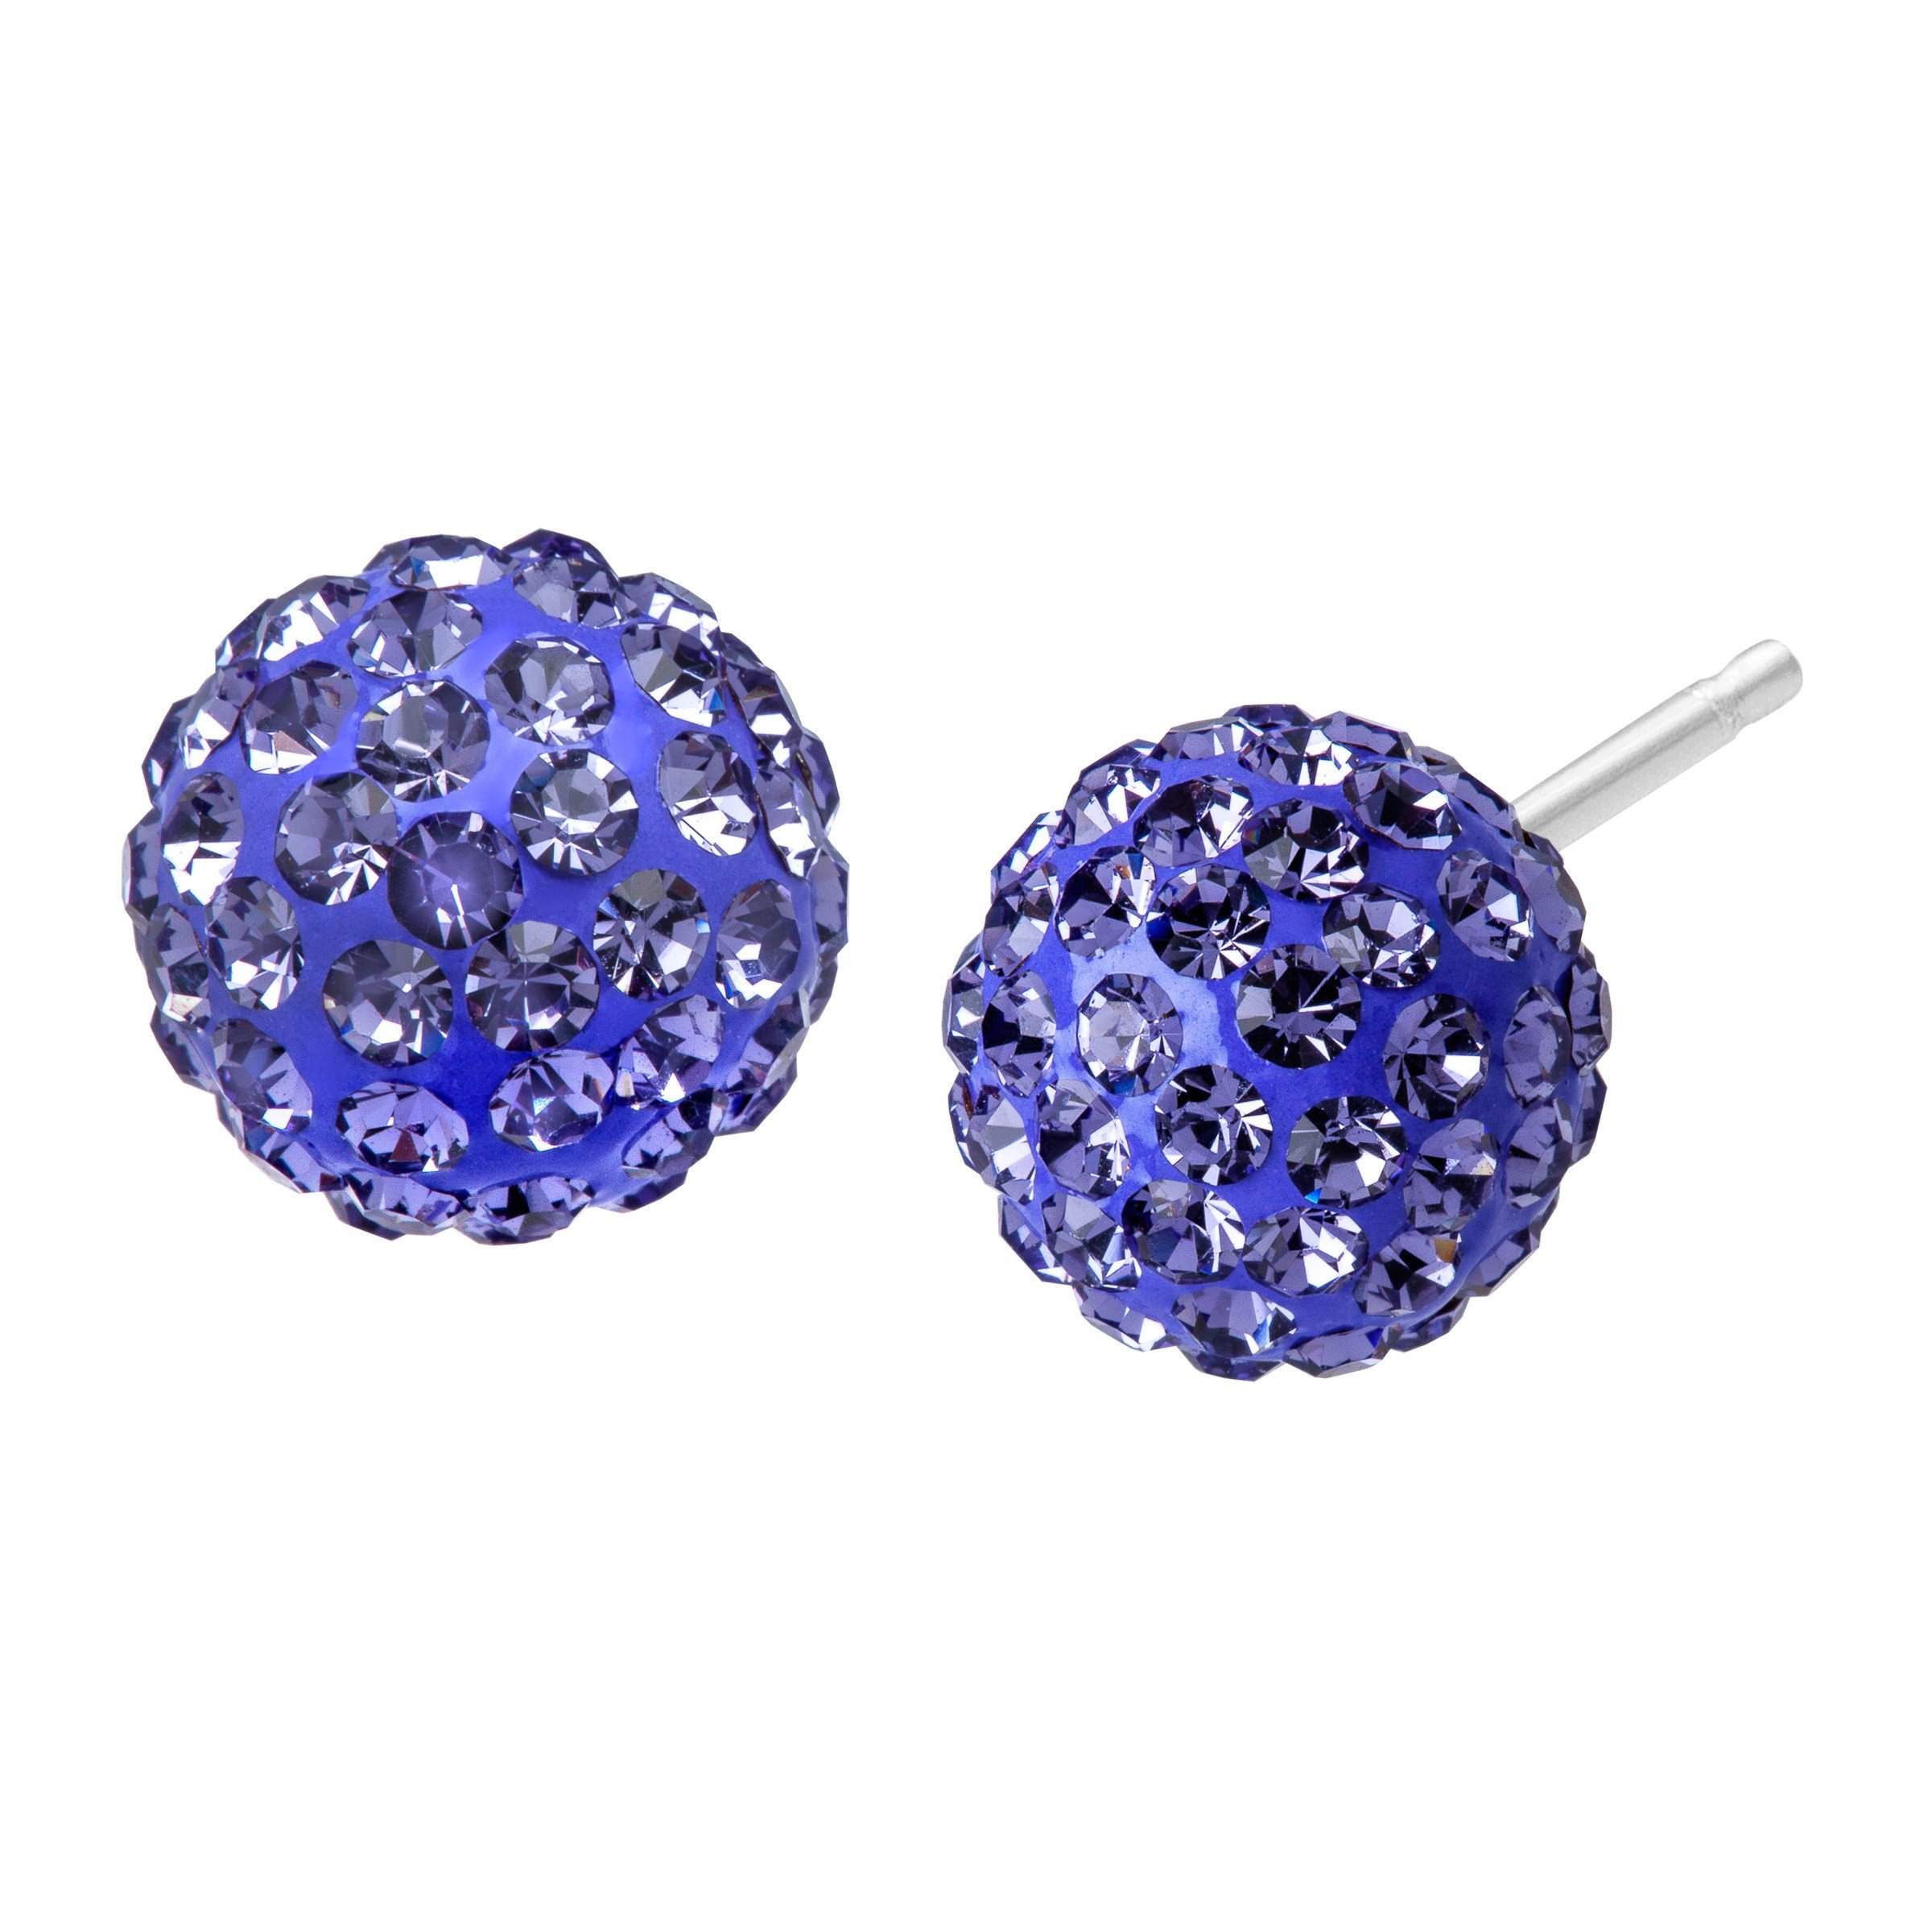 Glitter Ball Stud Earrings with Lavender Swarovski Crystal in Sterling Silver